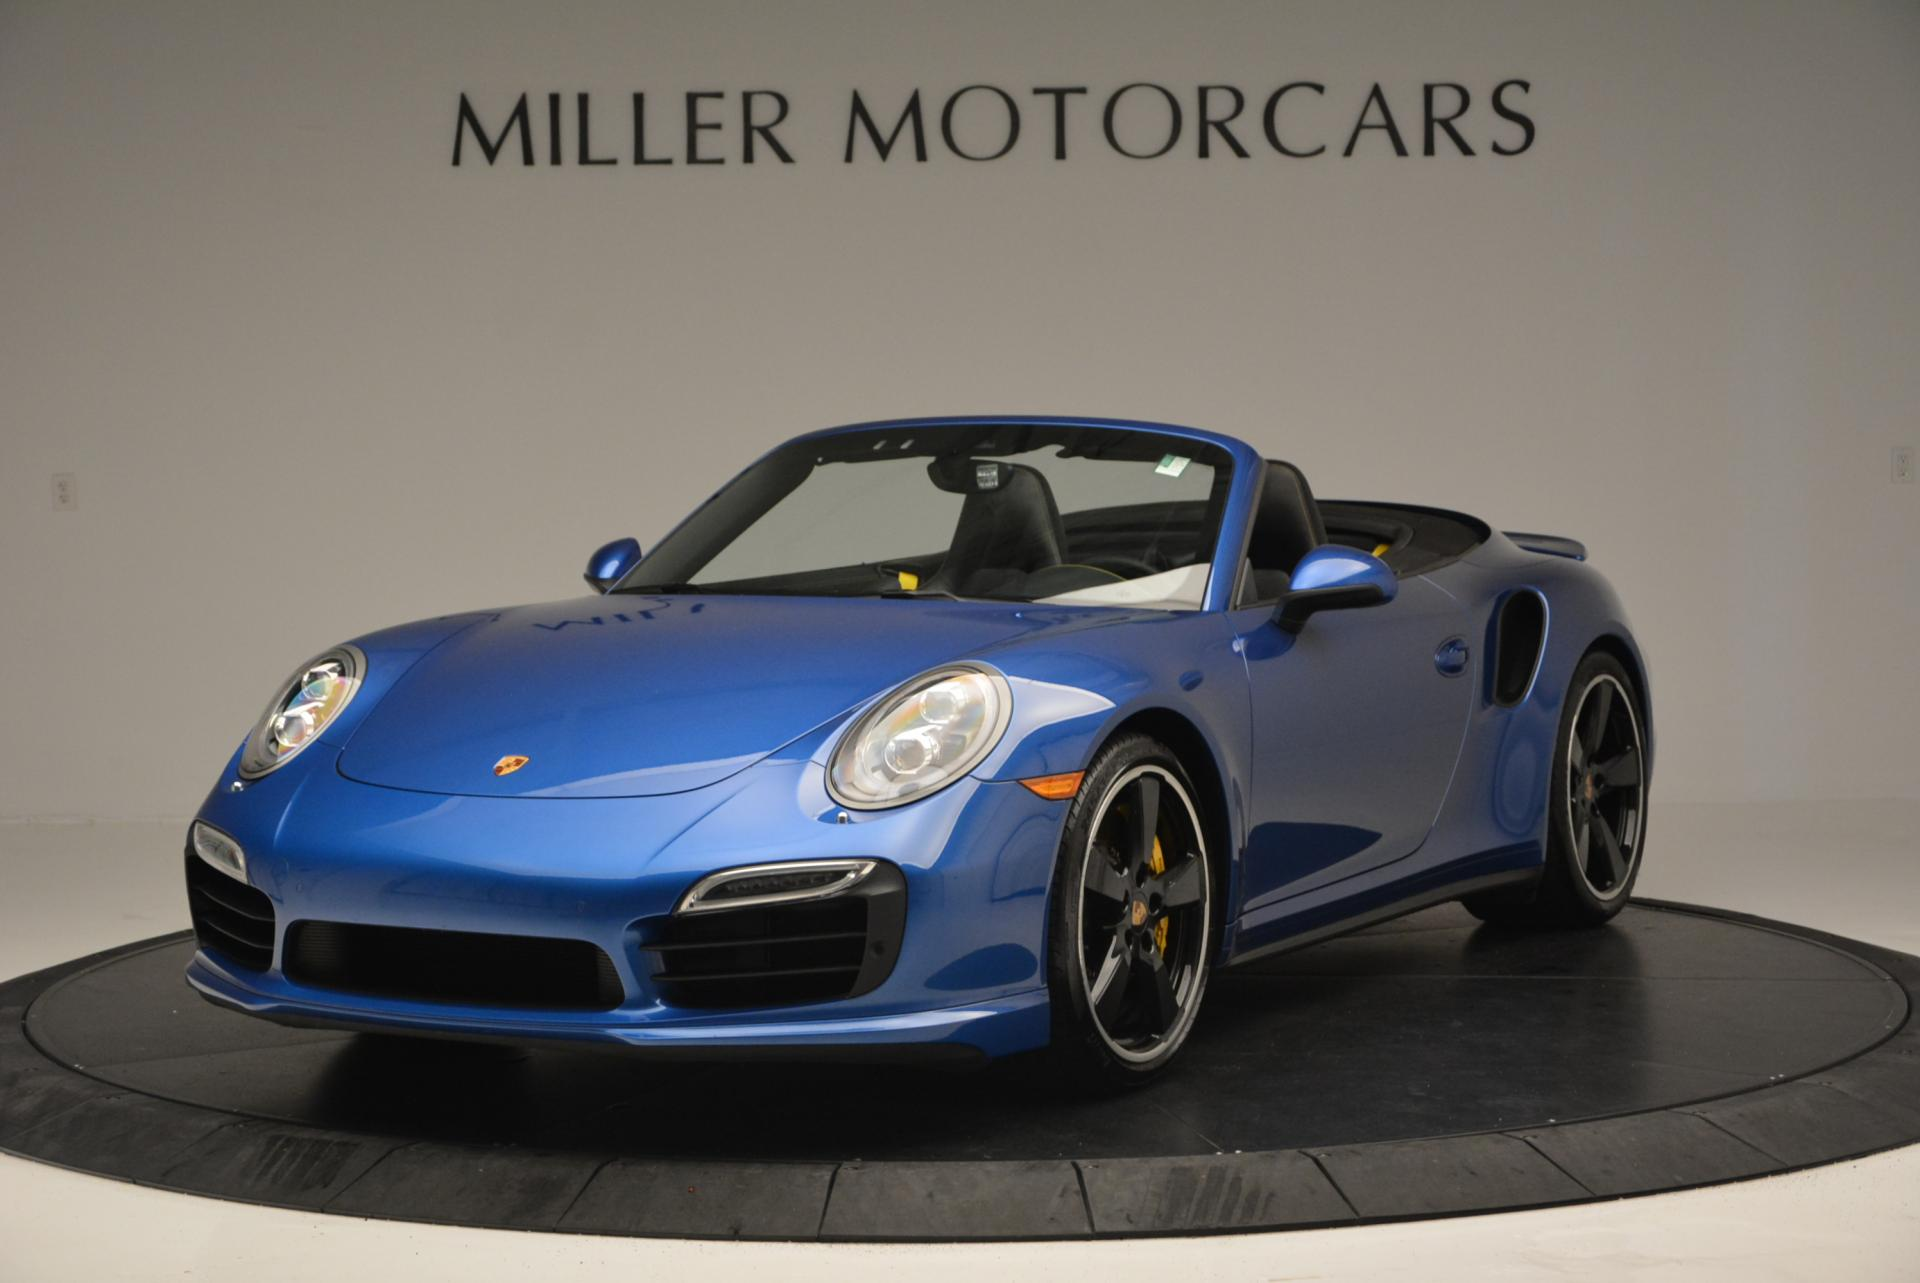 Used 2014 Porsche 911 Turbo S for sale Sold at Aston Martin of Greenwich in Greenwich CT 06830 1